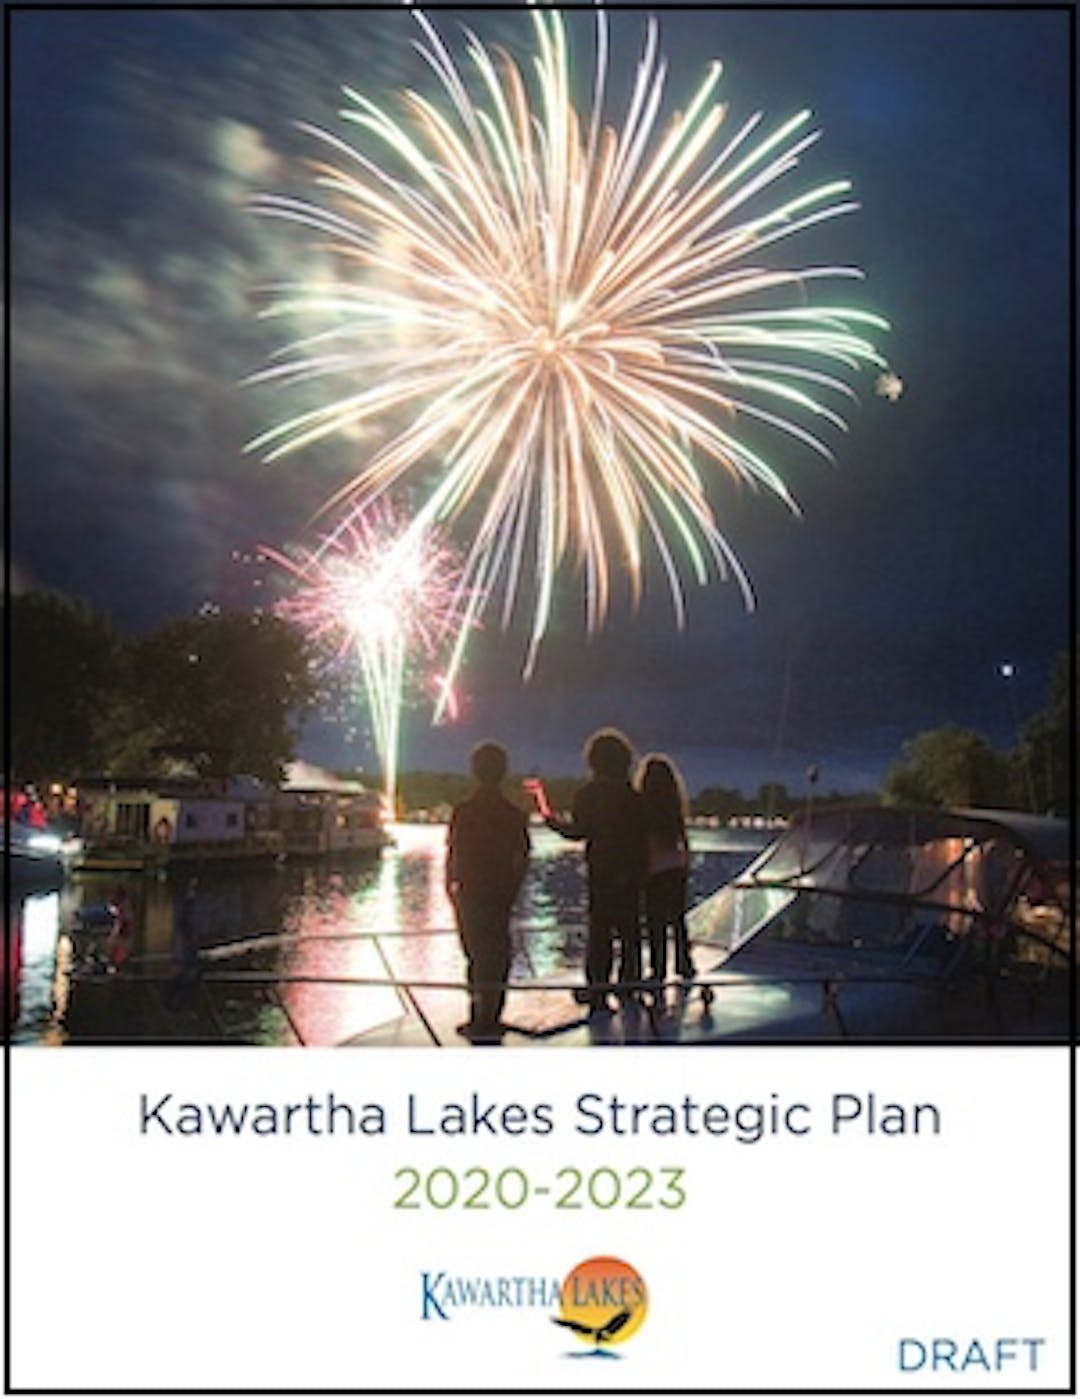 Cover of the draft Strategic Plan